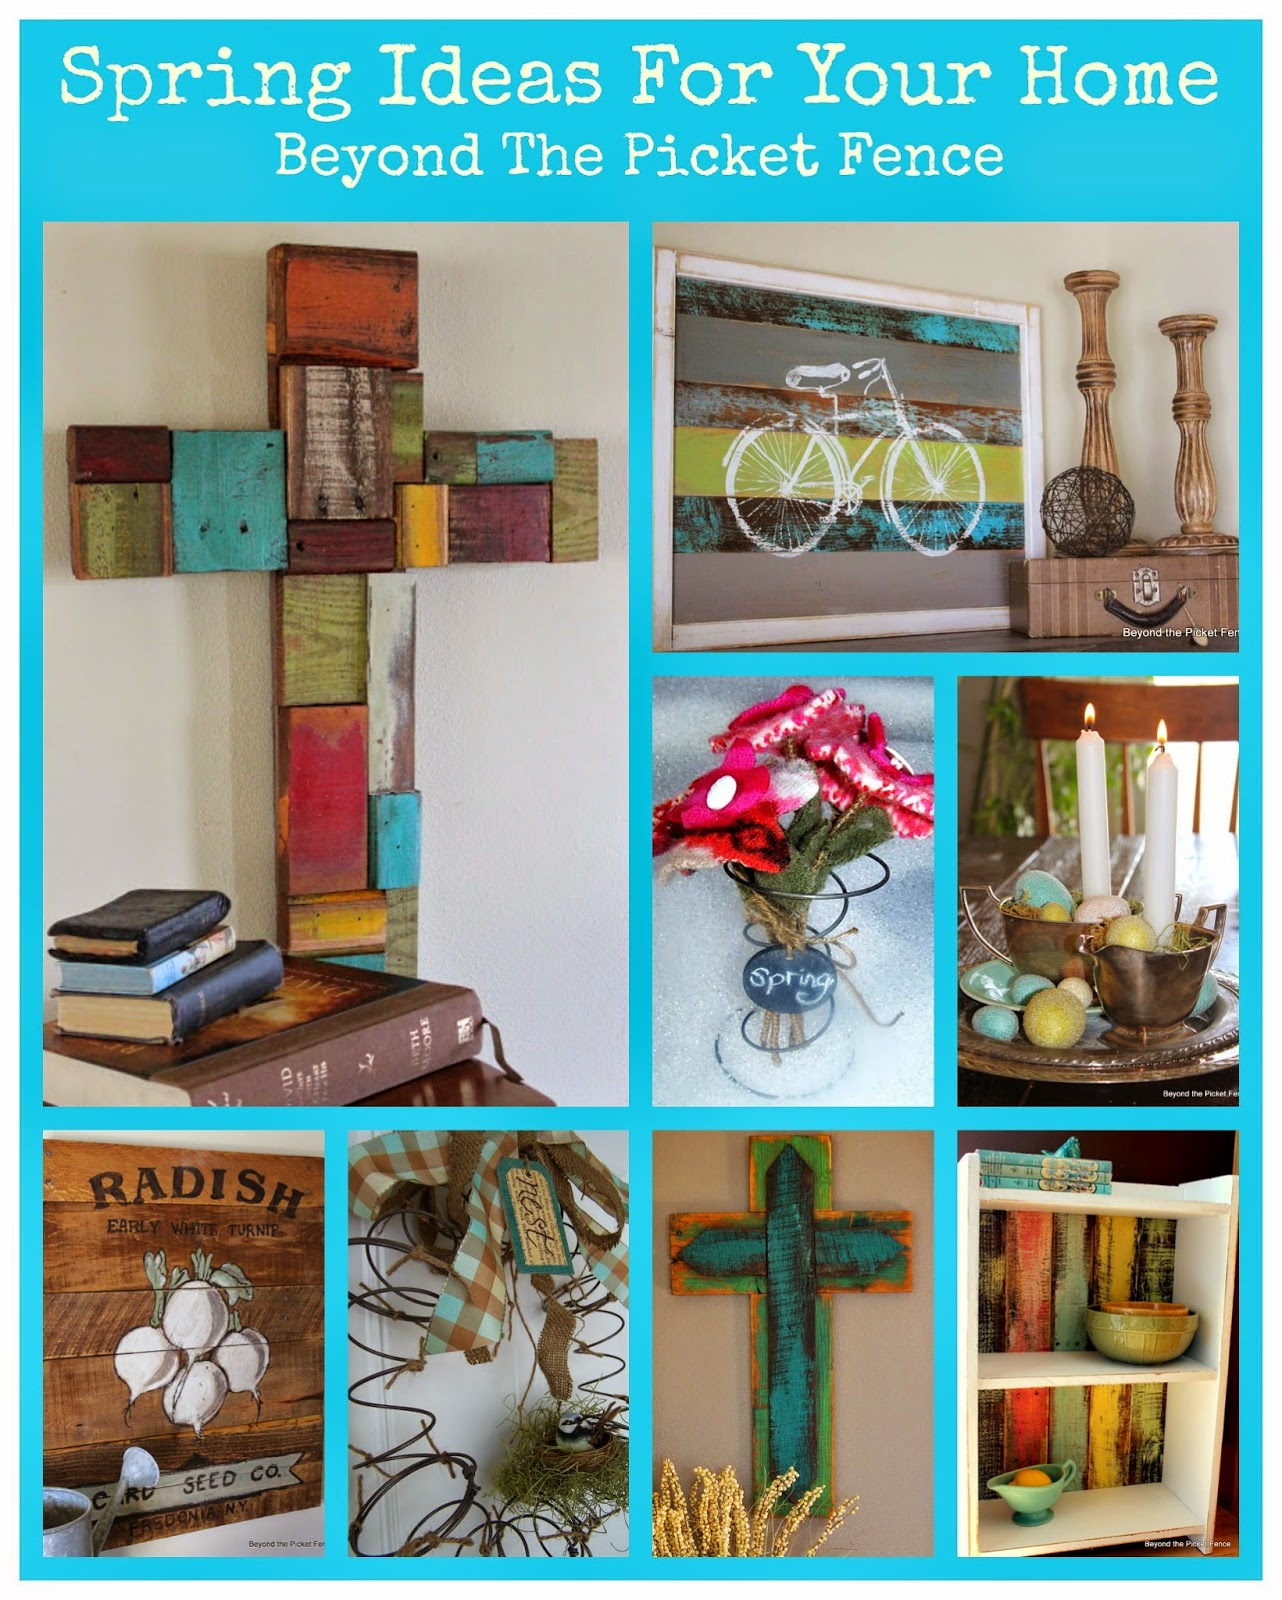 spring ideas, reclaimed wood, home decor, spring is in the air, paint, Beyond The Picket Fence, http://bec4-beyondthepicketfence.blogspot.com/2015/02/spring-ideas-are-you-ready.html